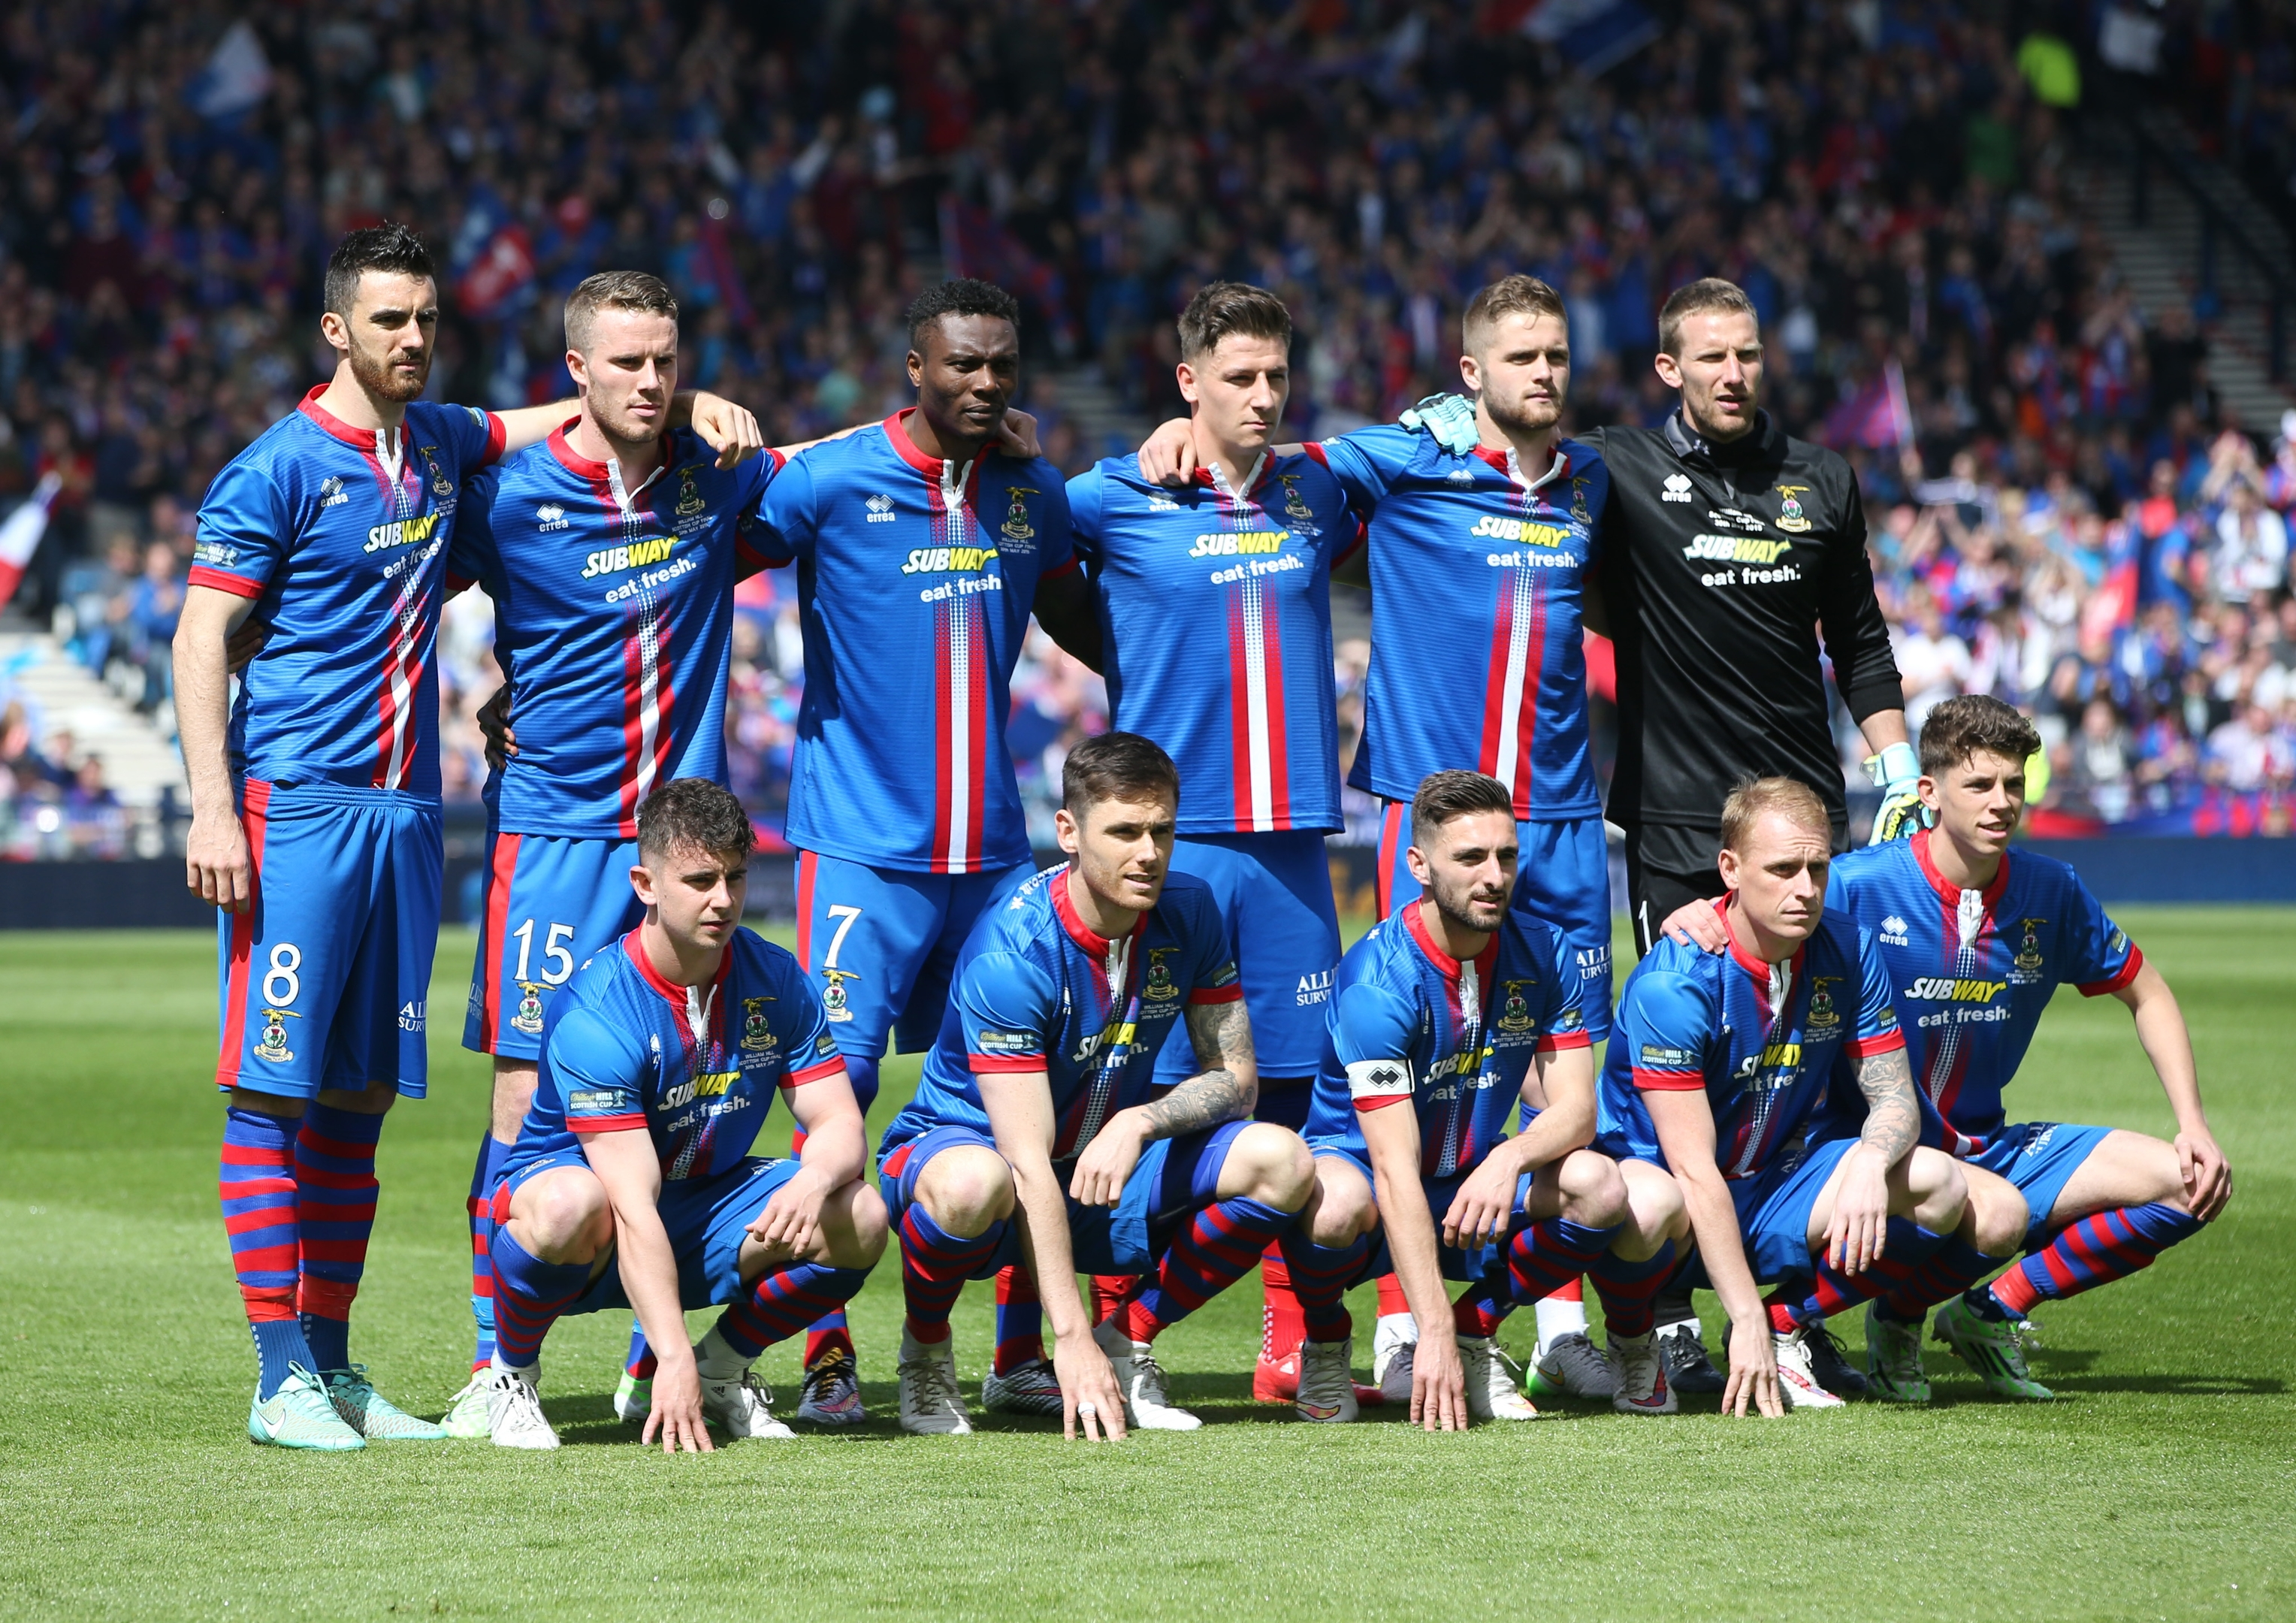 The newly crowned Inverness Caley Thistle legends